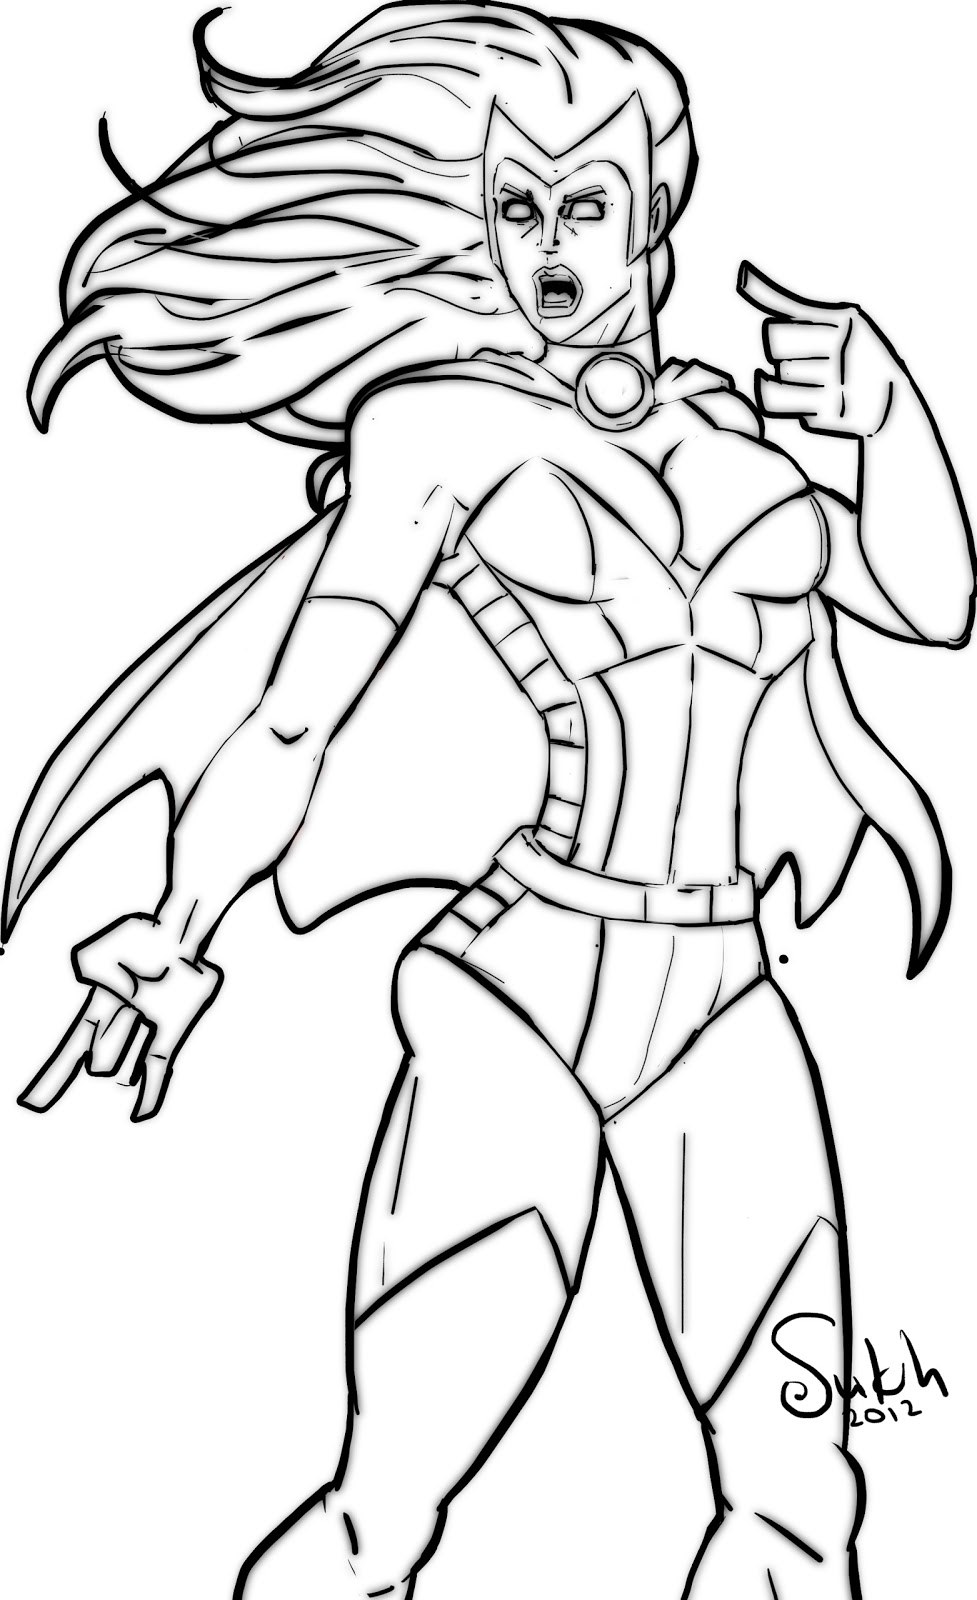 Marvel comics coloring pages printable ~ Free Super Hero Line Art For Colouring: Marvel Comics ...